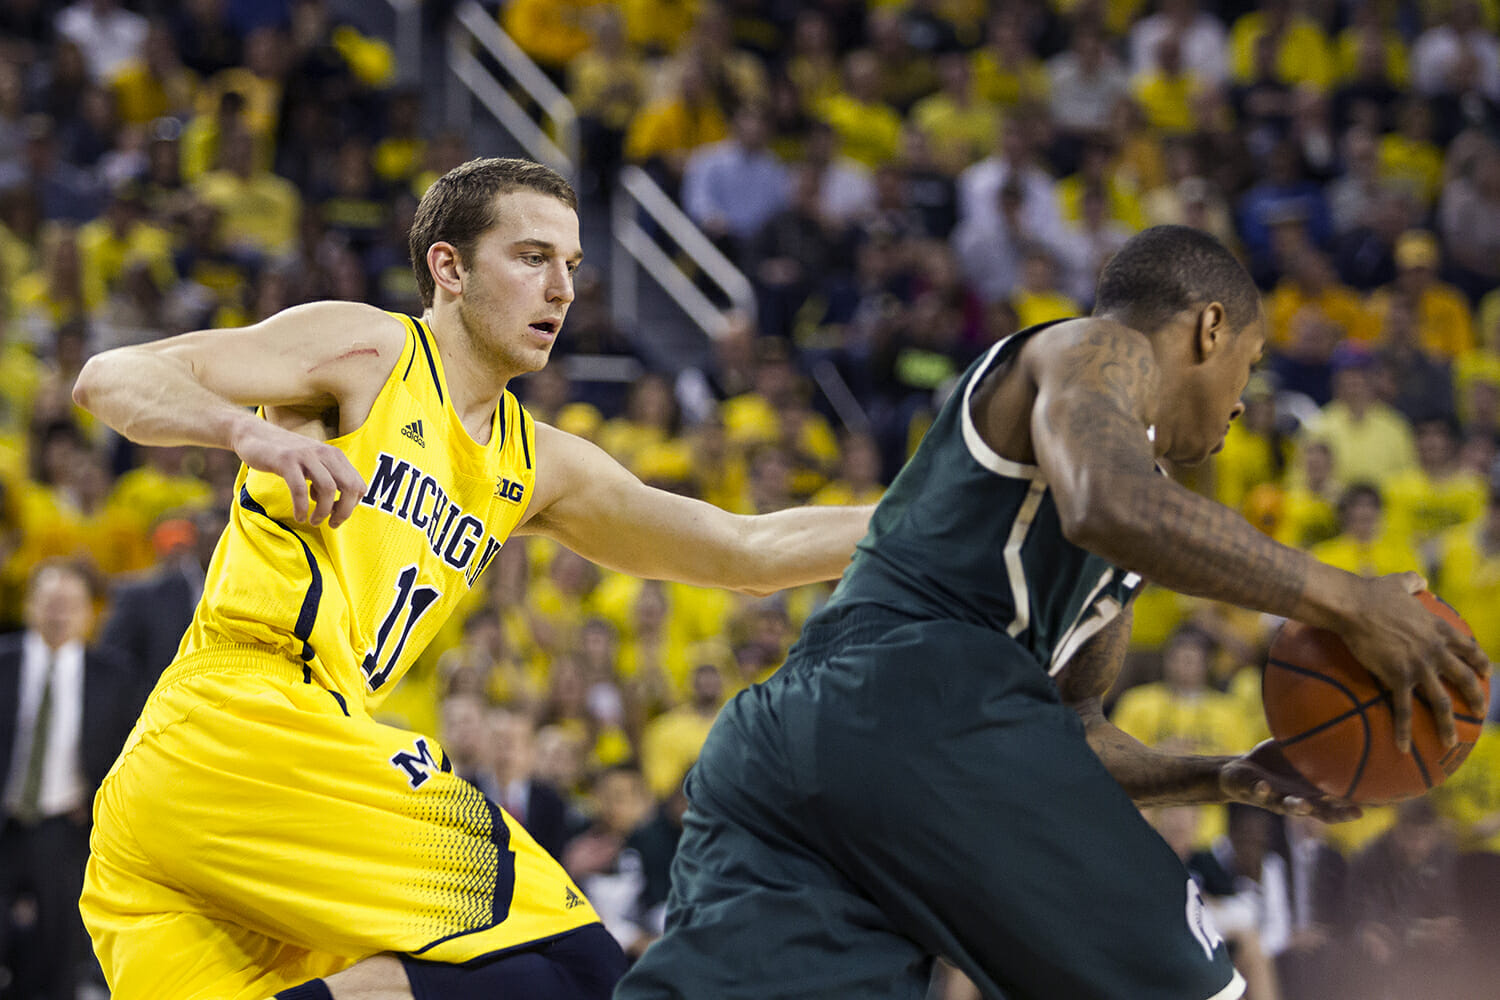 Michigan vs Michigan State_28